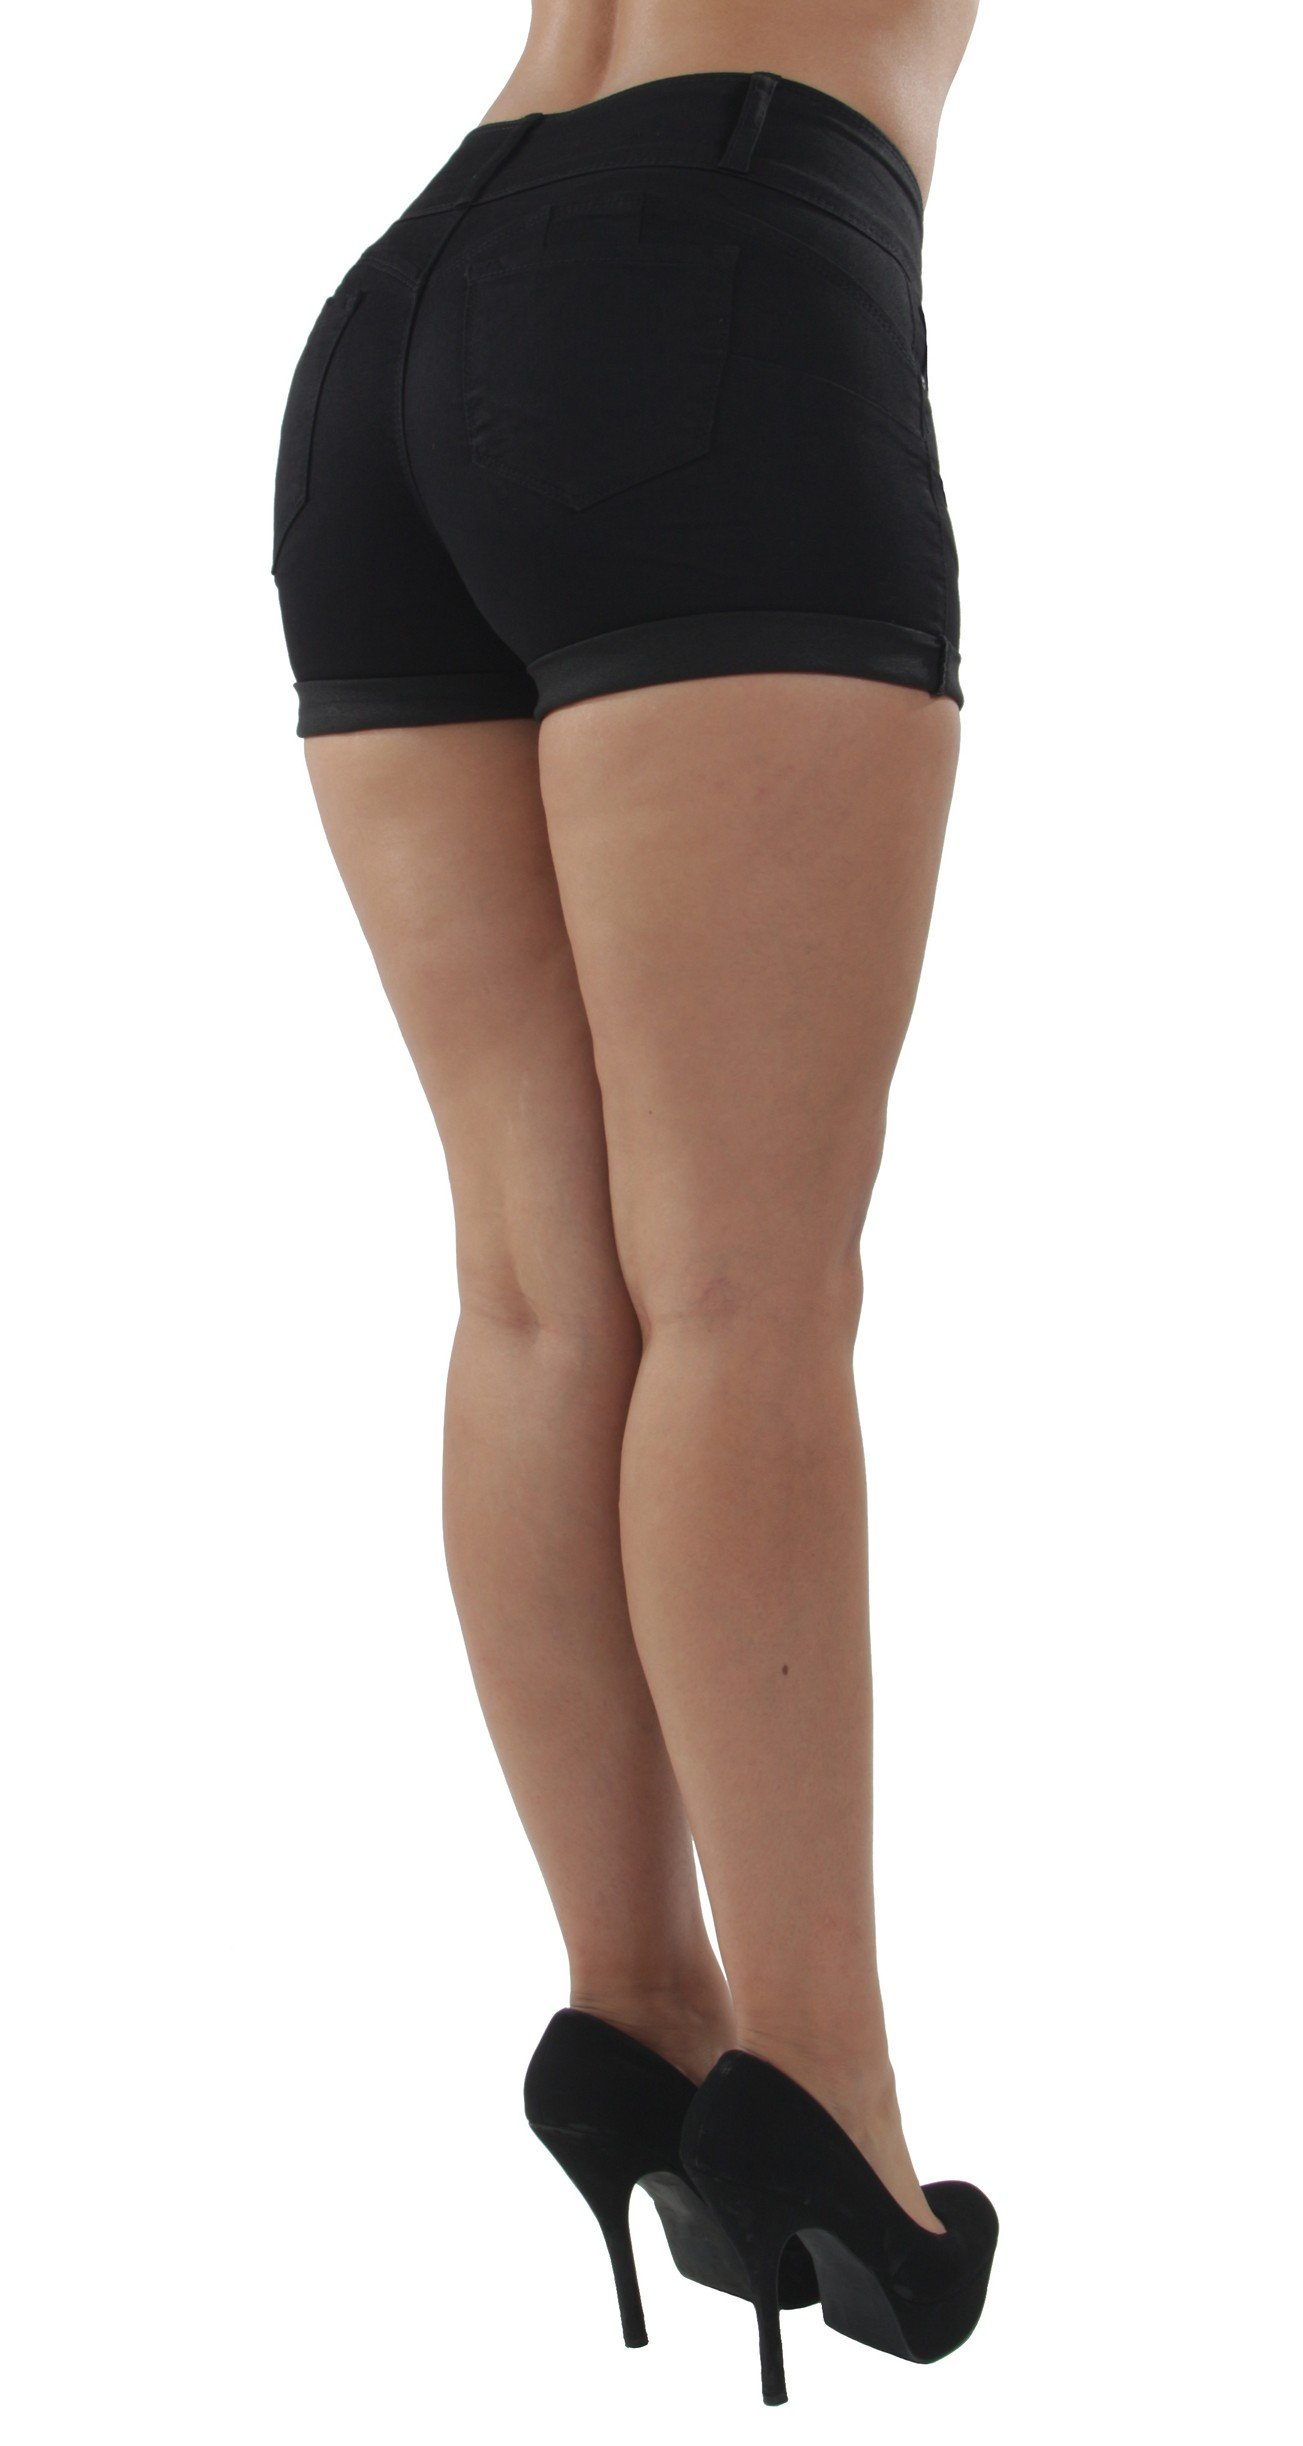 Fashion2Love 90099XL(SH) - Plus Size, Colombian Design, Mid Waist, Butt Lift, Booty Shorts in Black Size 1XL by Fashion2Love (Image #5)